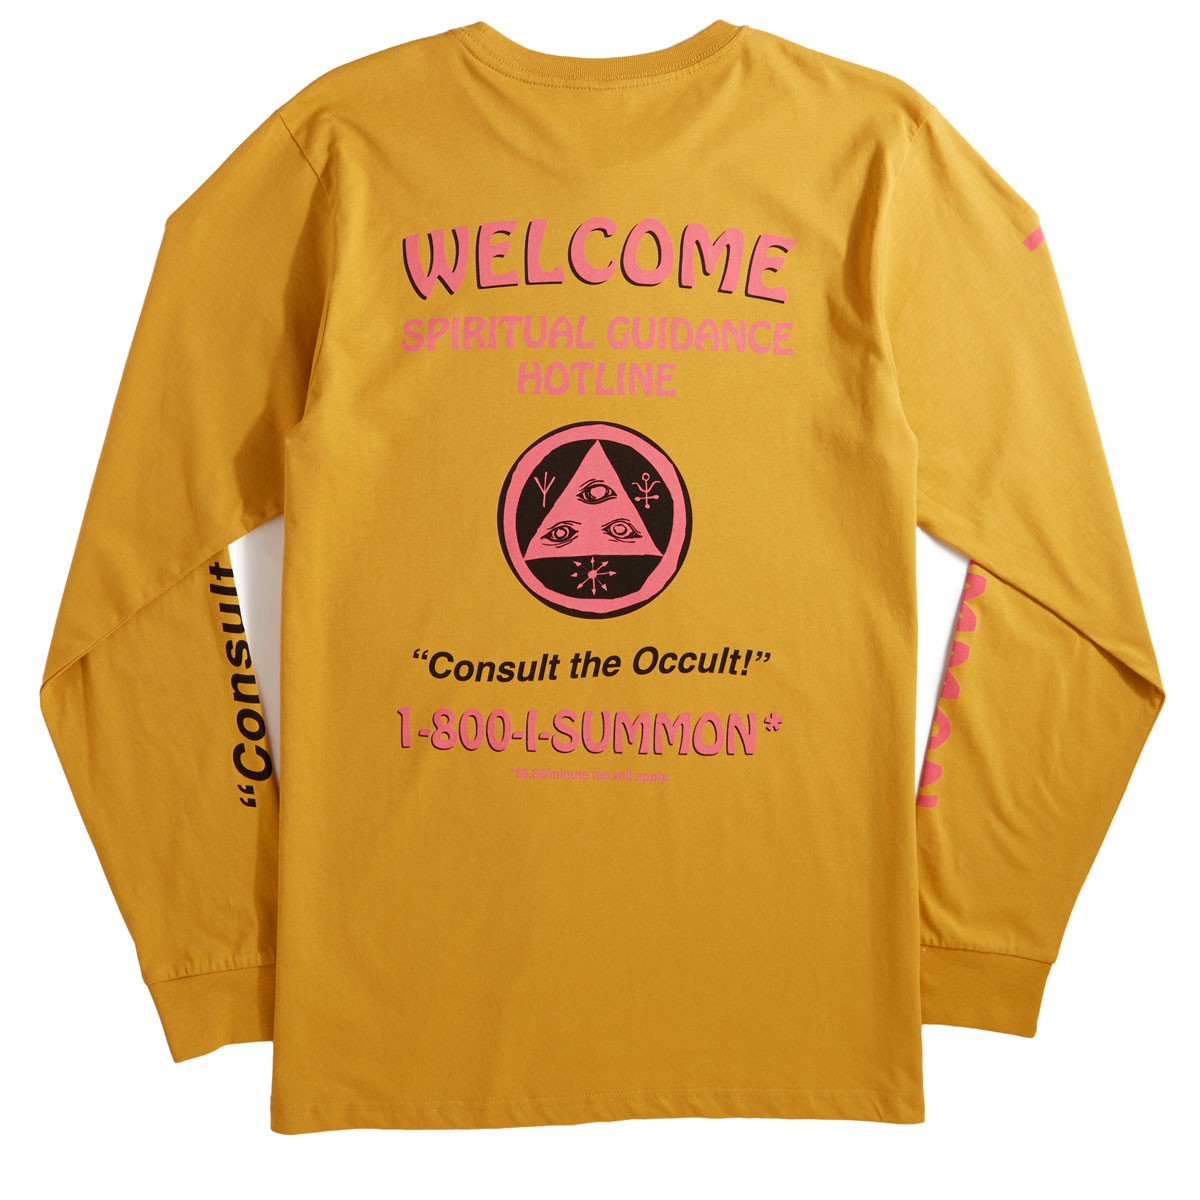 ad8a43828d4 Welcome Hotline Long Sleeve T-Shirt - Mustard